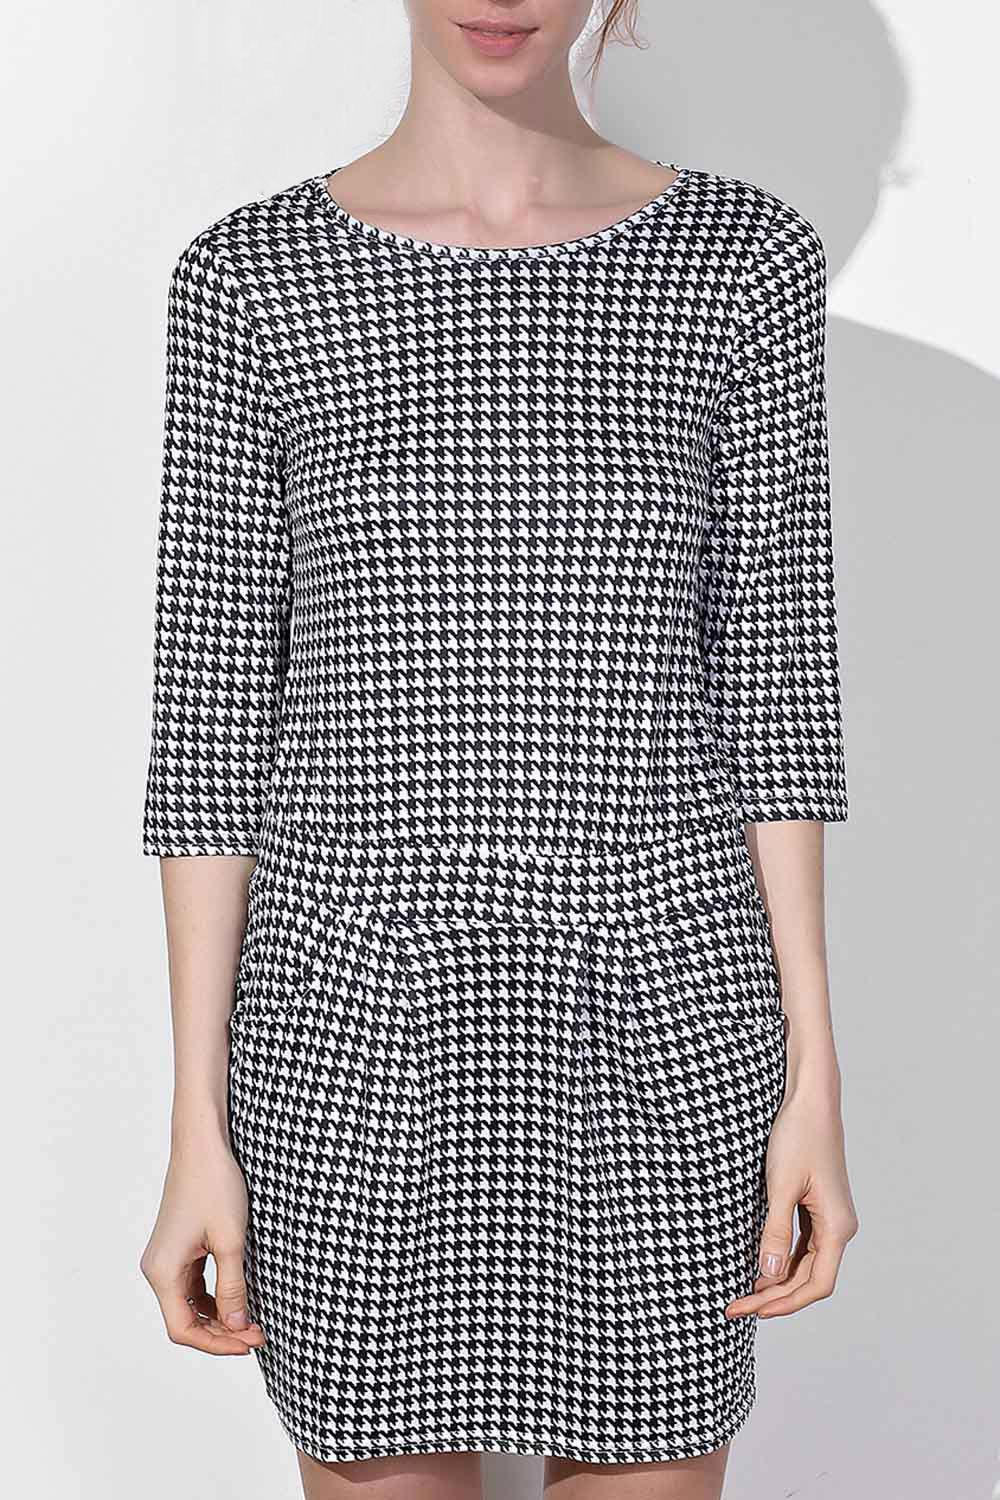 Trendy Houndstooth Printed Round Collar 3/4 Sleeve Dress For Women